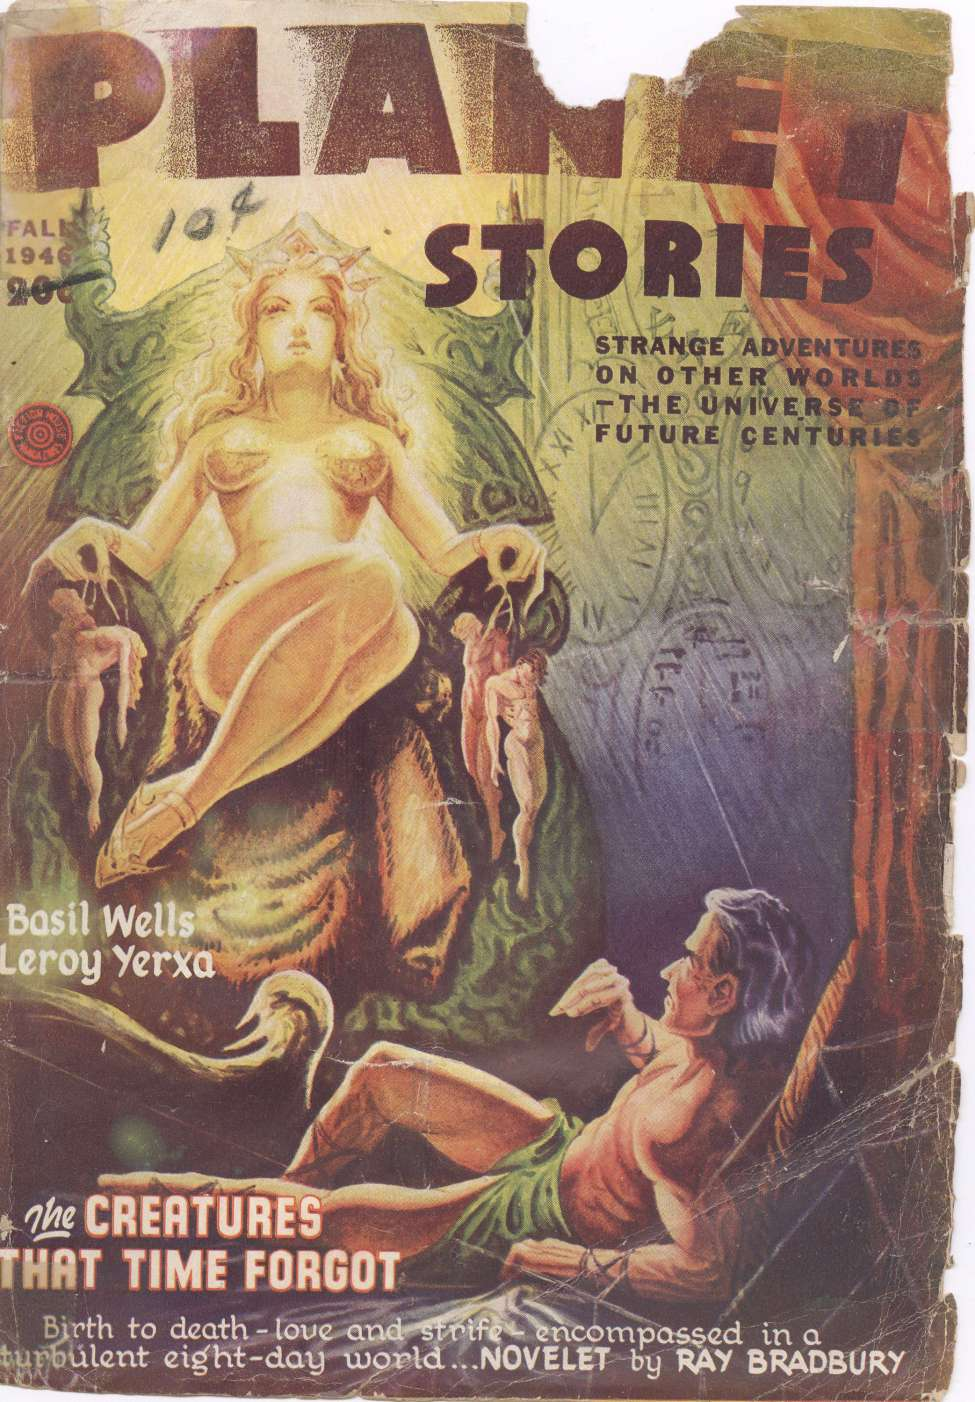 Comic Book Cover For Planet Stories v03 04 - The Creatures That Time Forgot - Ray Bradbury